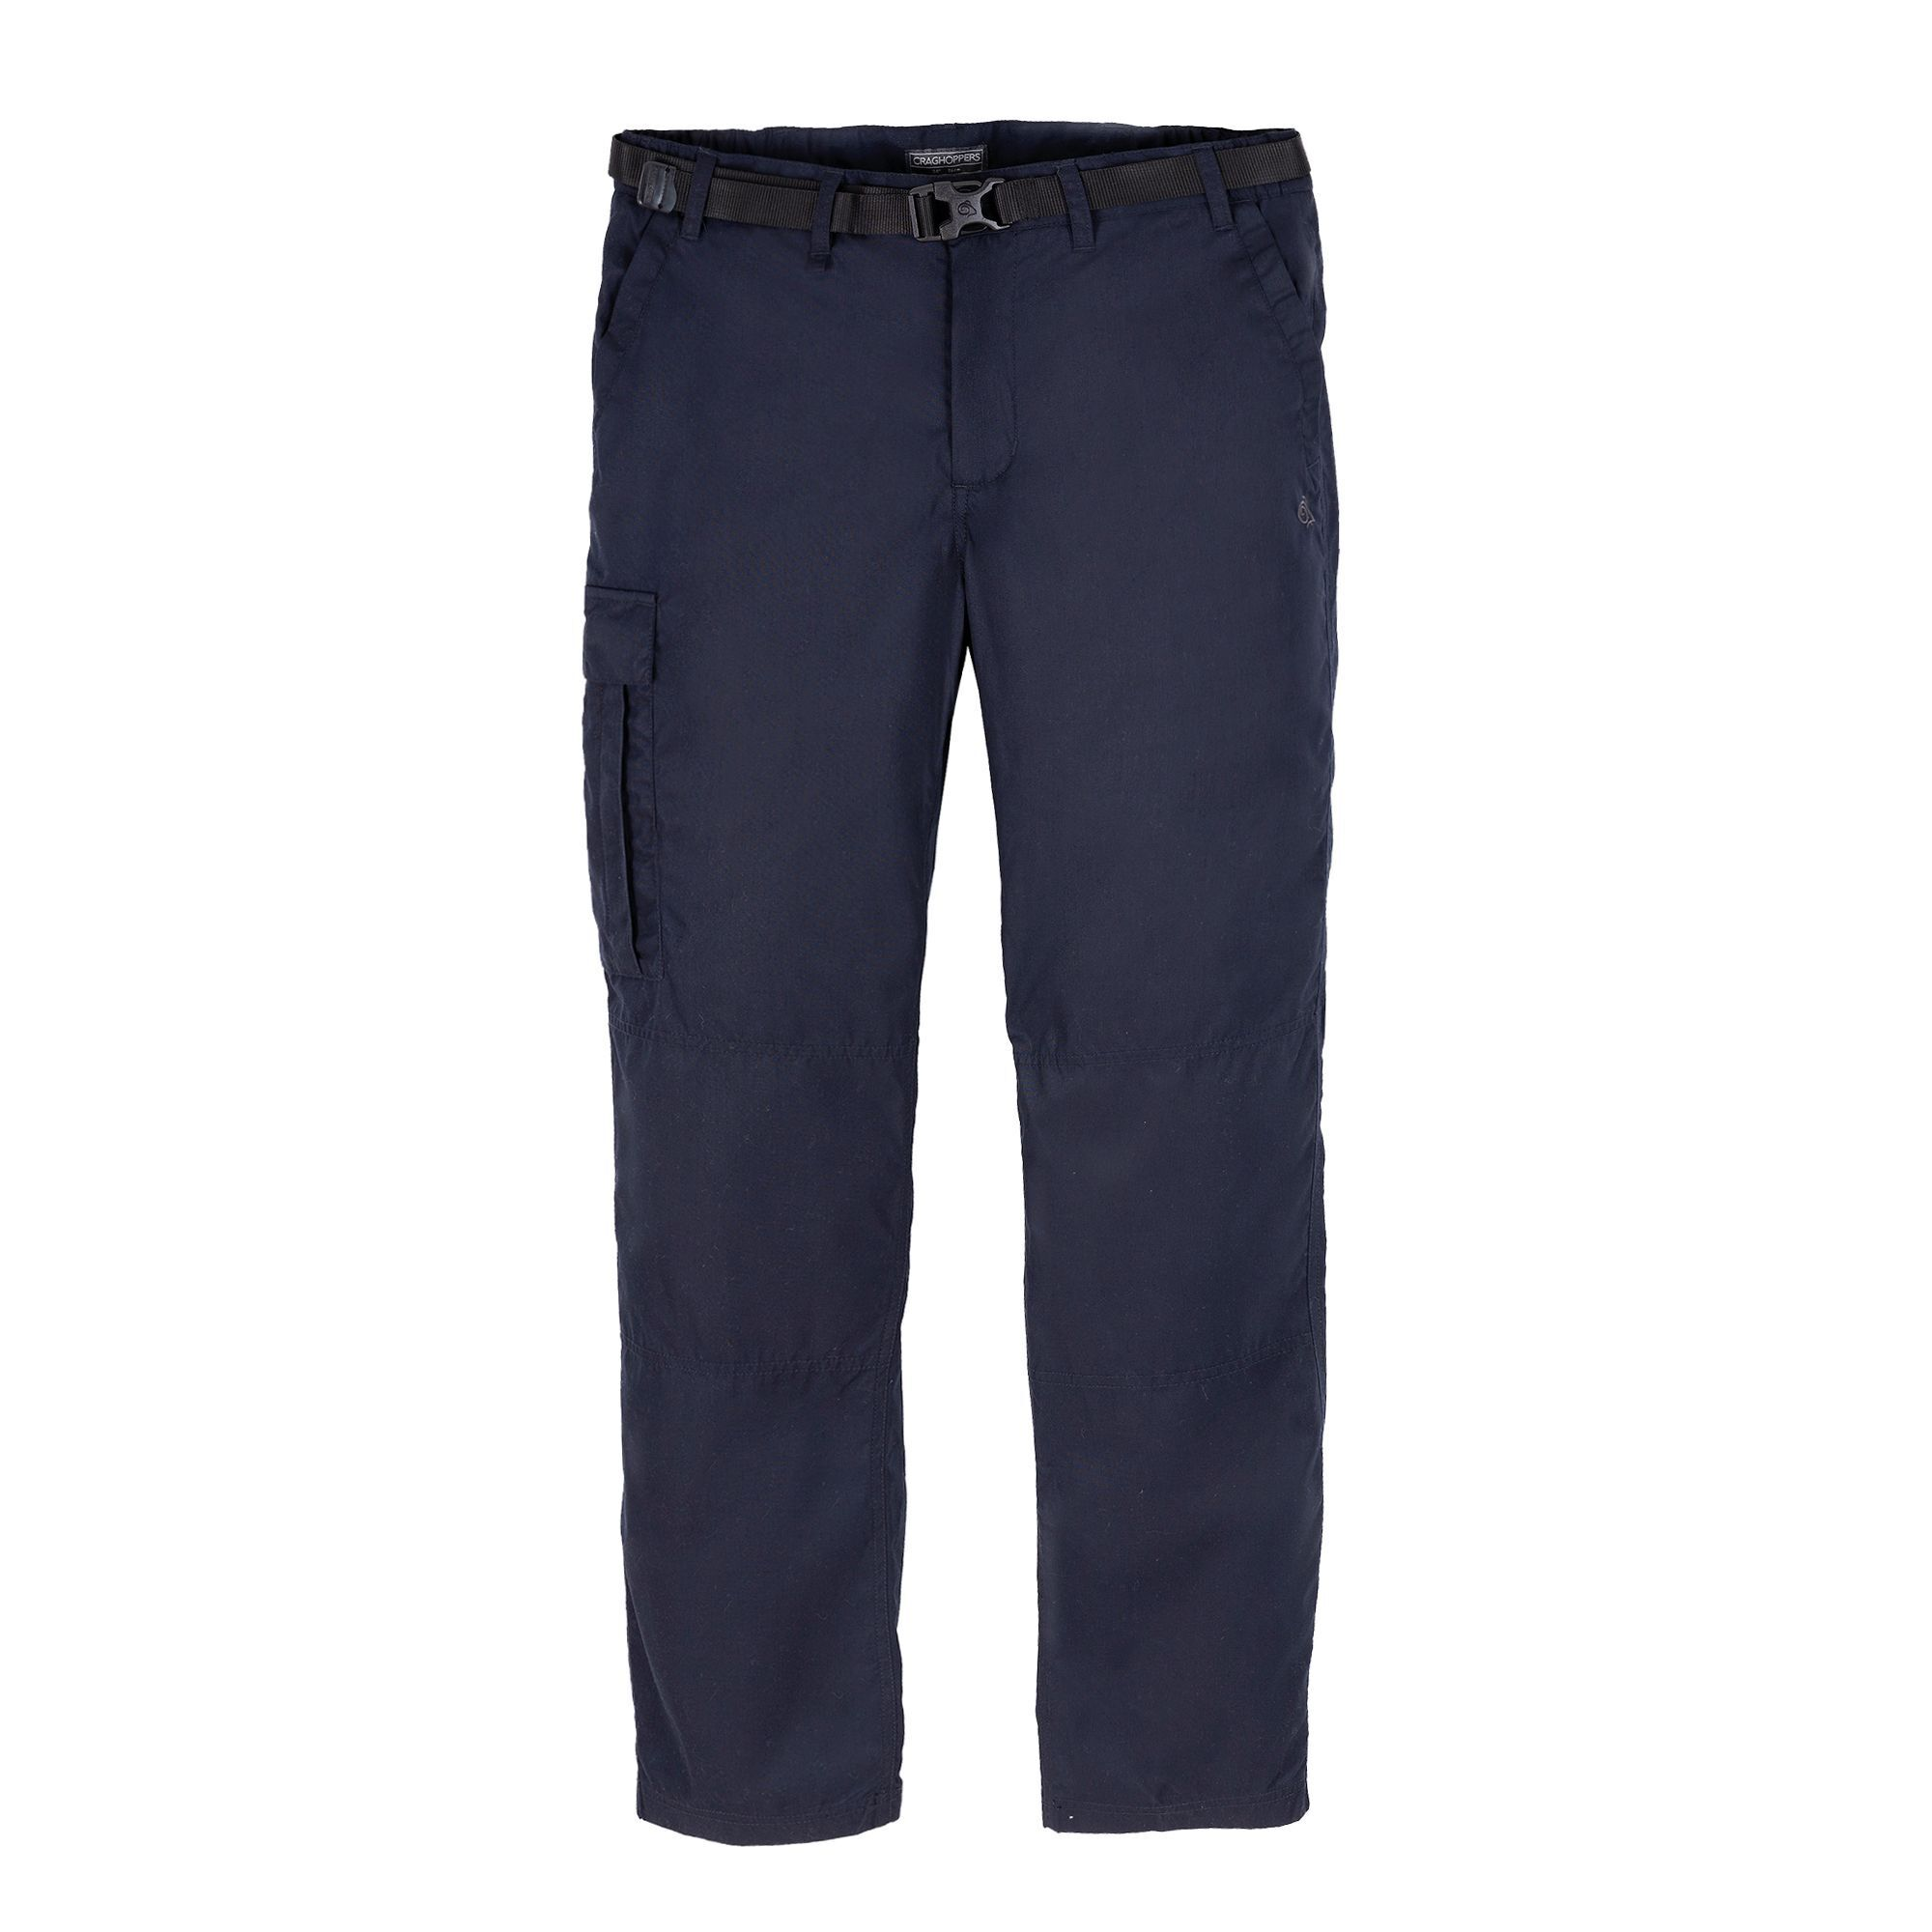 Craghoppers Mens Expert Kiwi Tailored Cargo Trousers (38R) (Dark Navy)